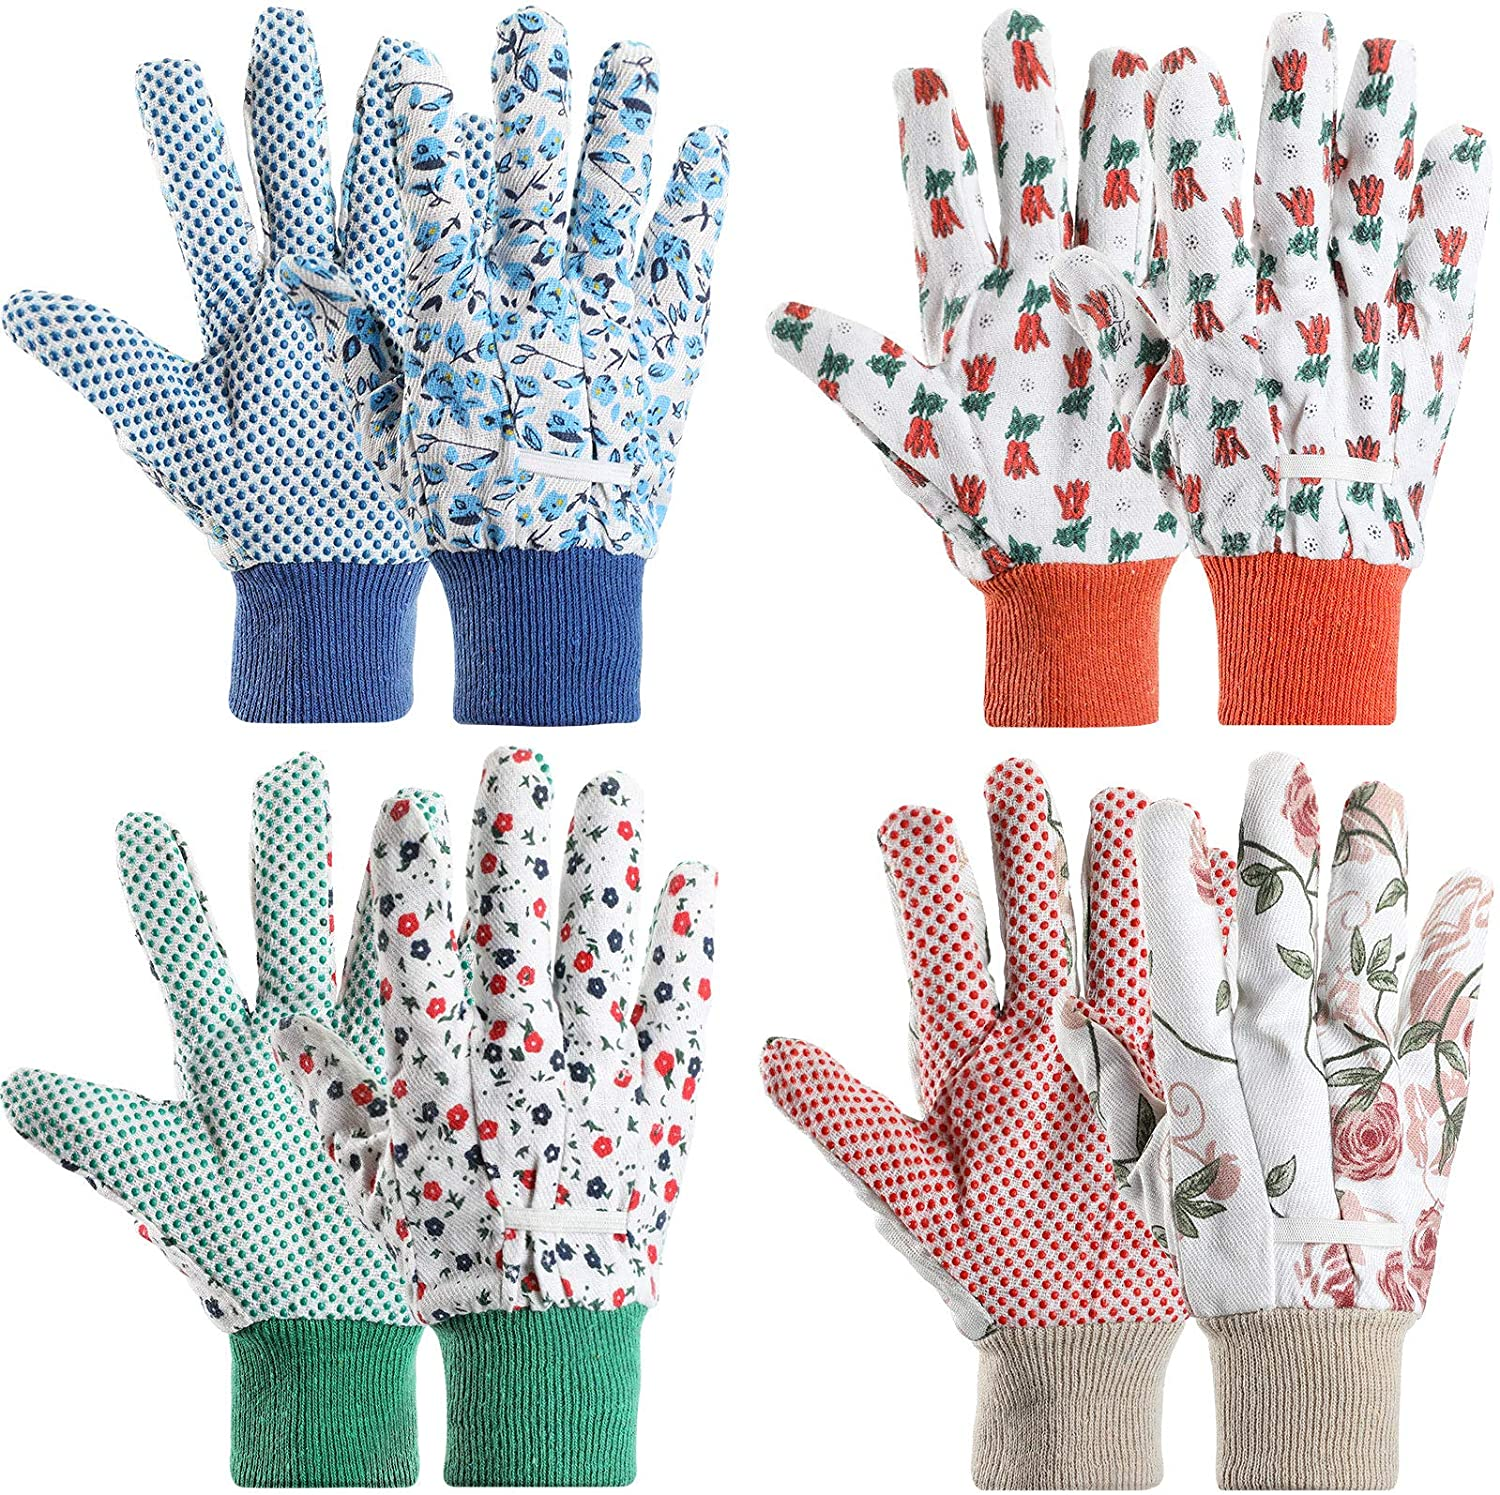 4 Pairs Garden Gloves Floral Gardening Gloves with Soft PVC Dots Gloves Women Working Yard Gloves for Yard Cleaning, Fishing, Gardening, Weeding, Planting, Watering